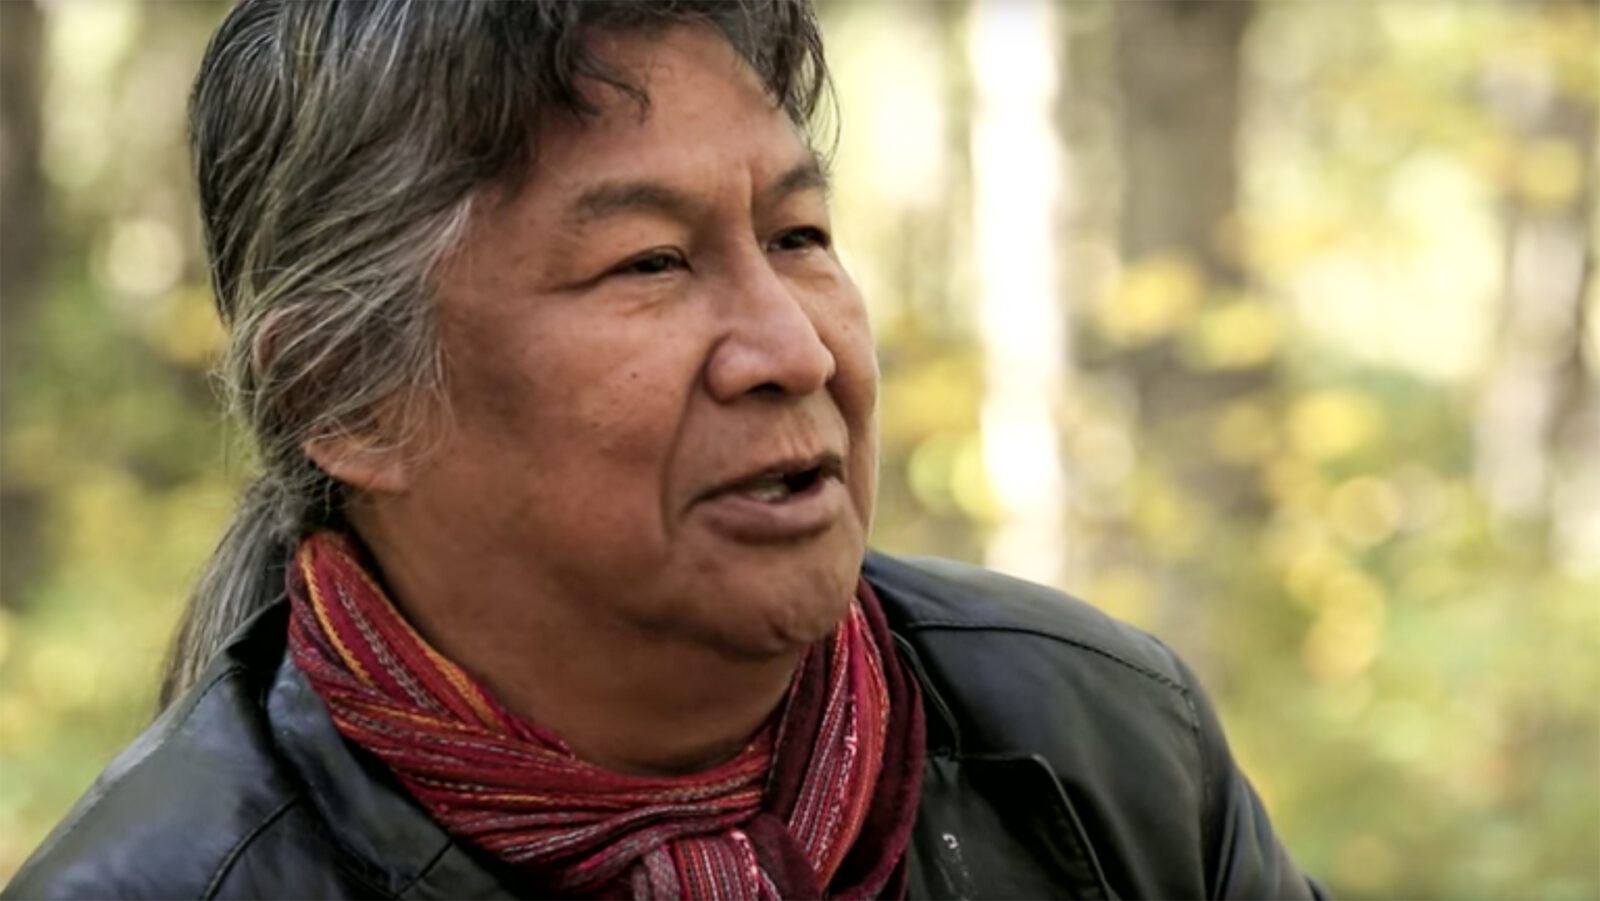 Dene man speaking about forest conservation